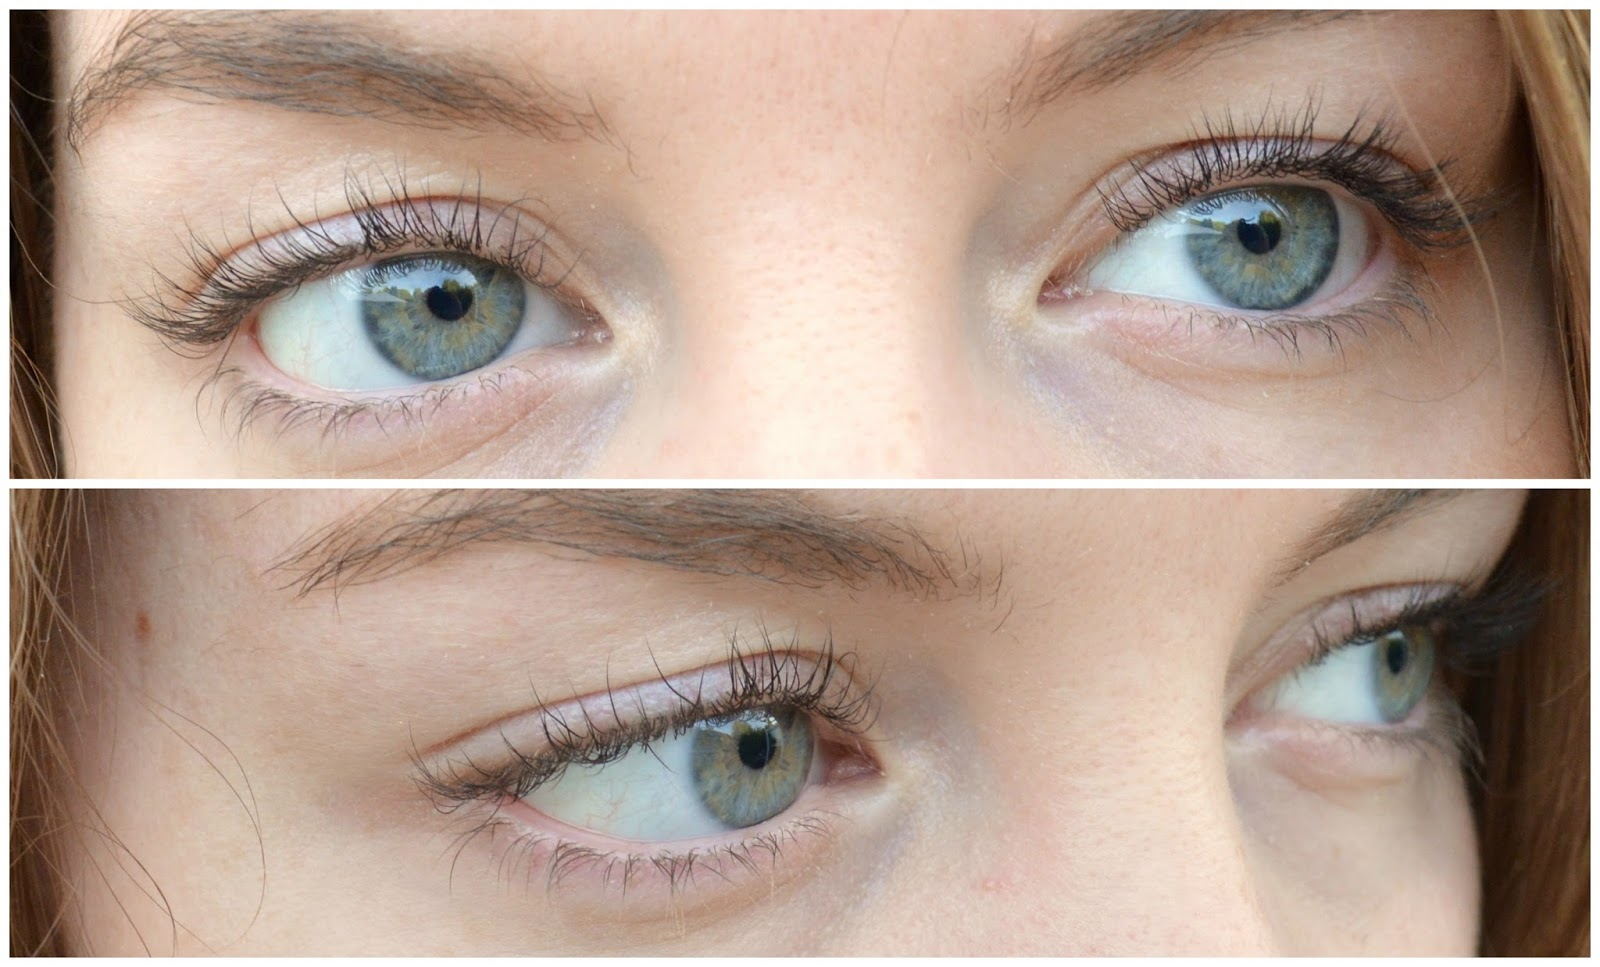 Effortlessly Curled Lashes With The Lvl Eyelash Treatment Mapped